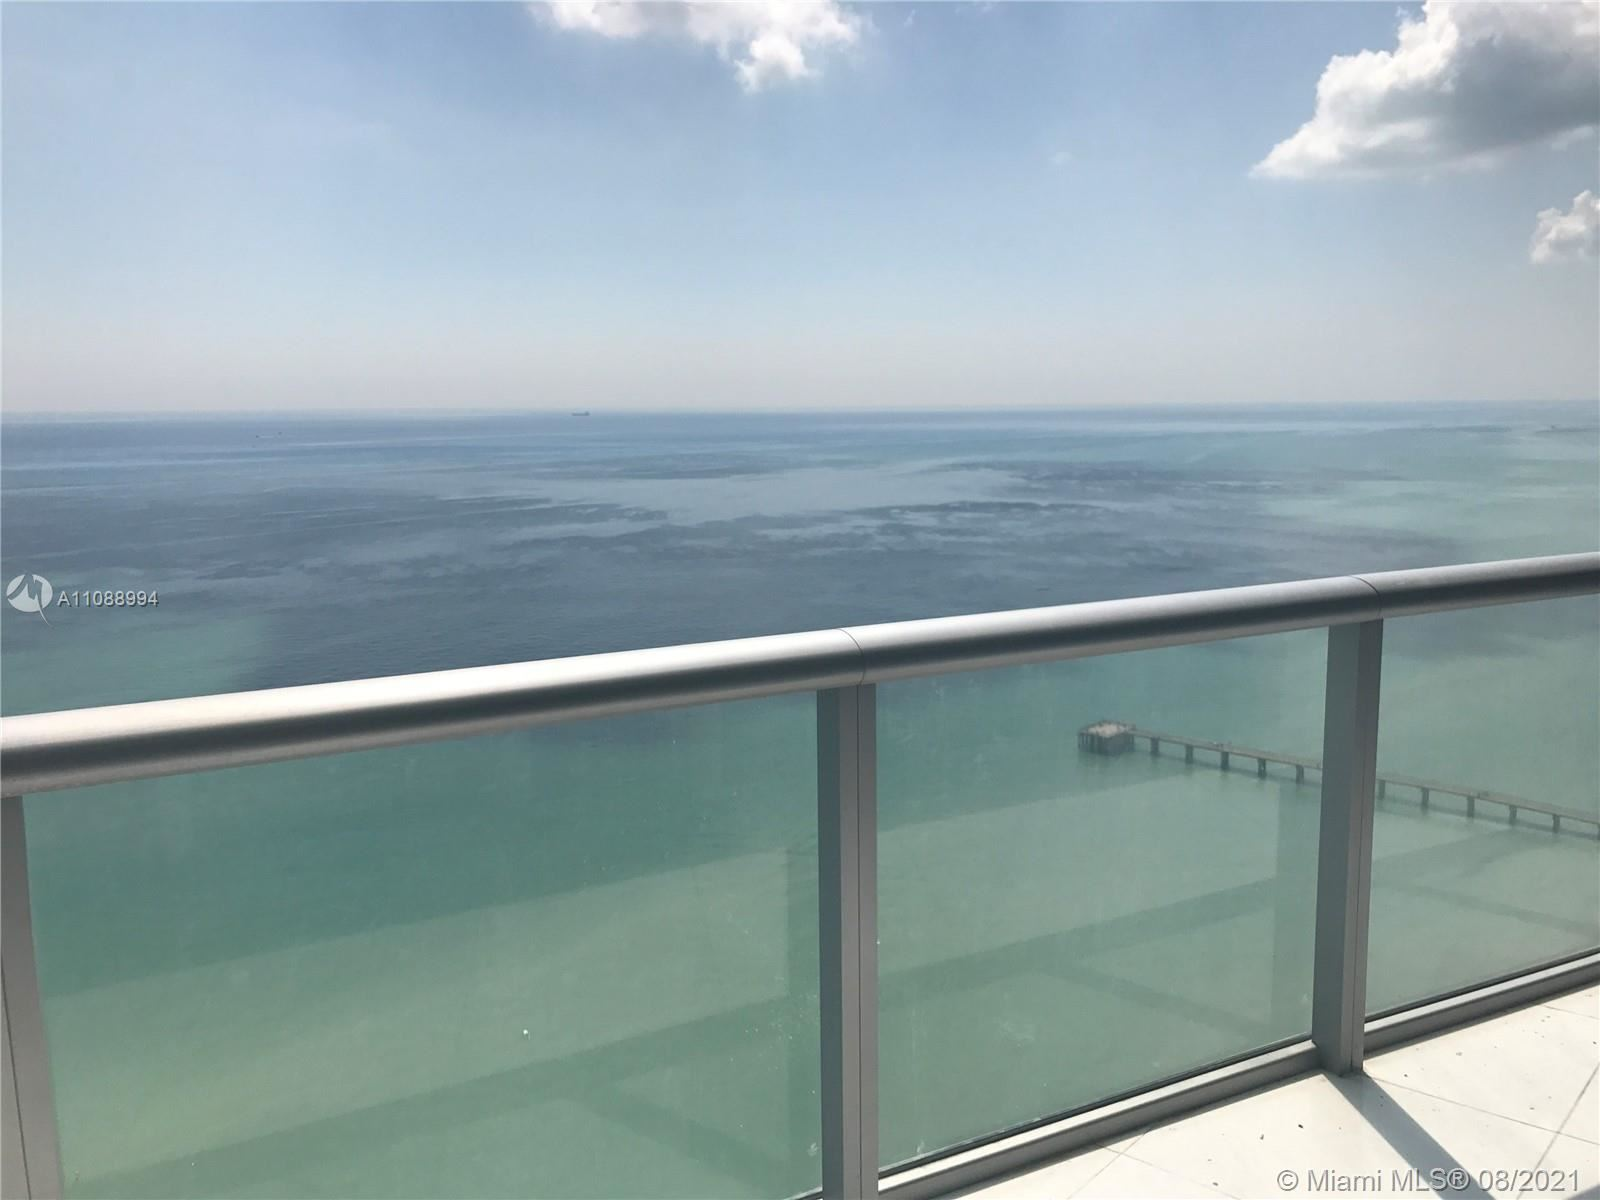 17001 Collins Ave #4107, Sunny Isles, FL 33160 - #: A11088994